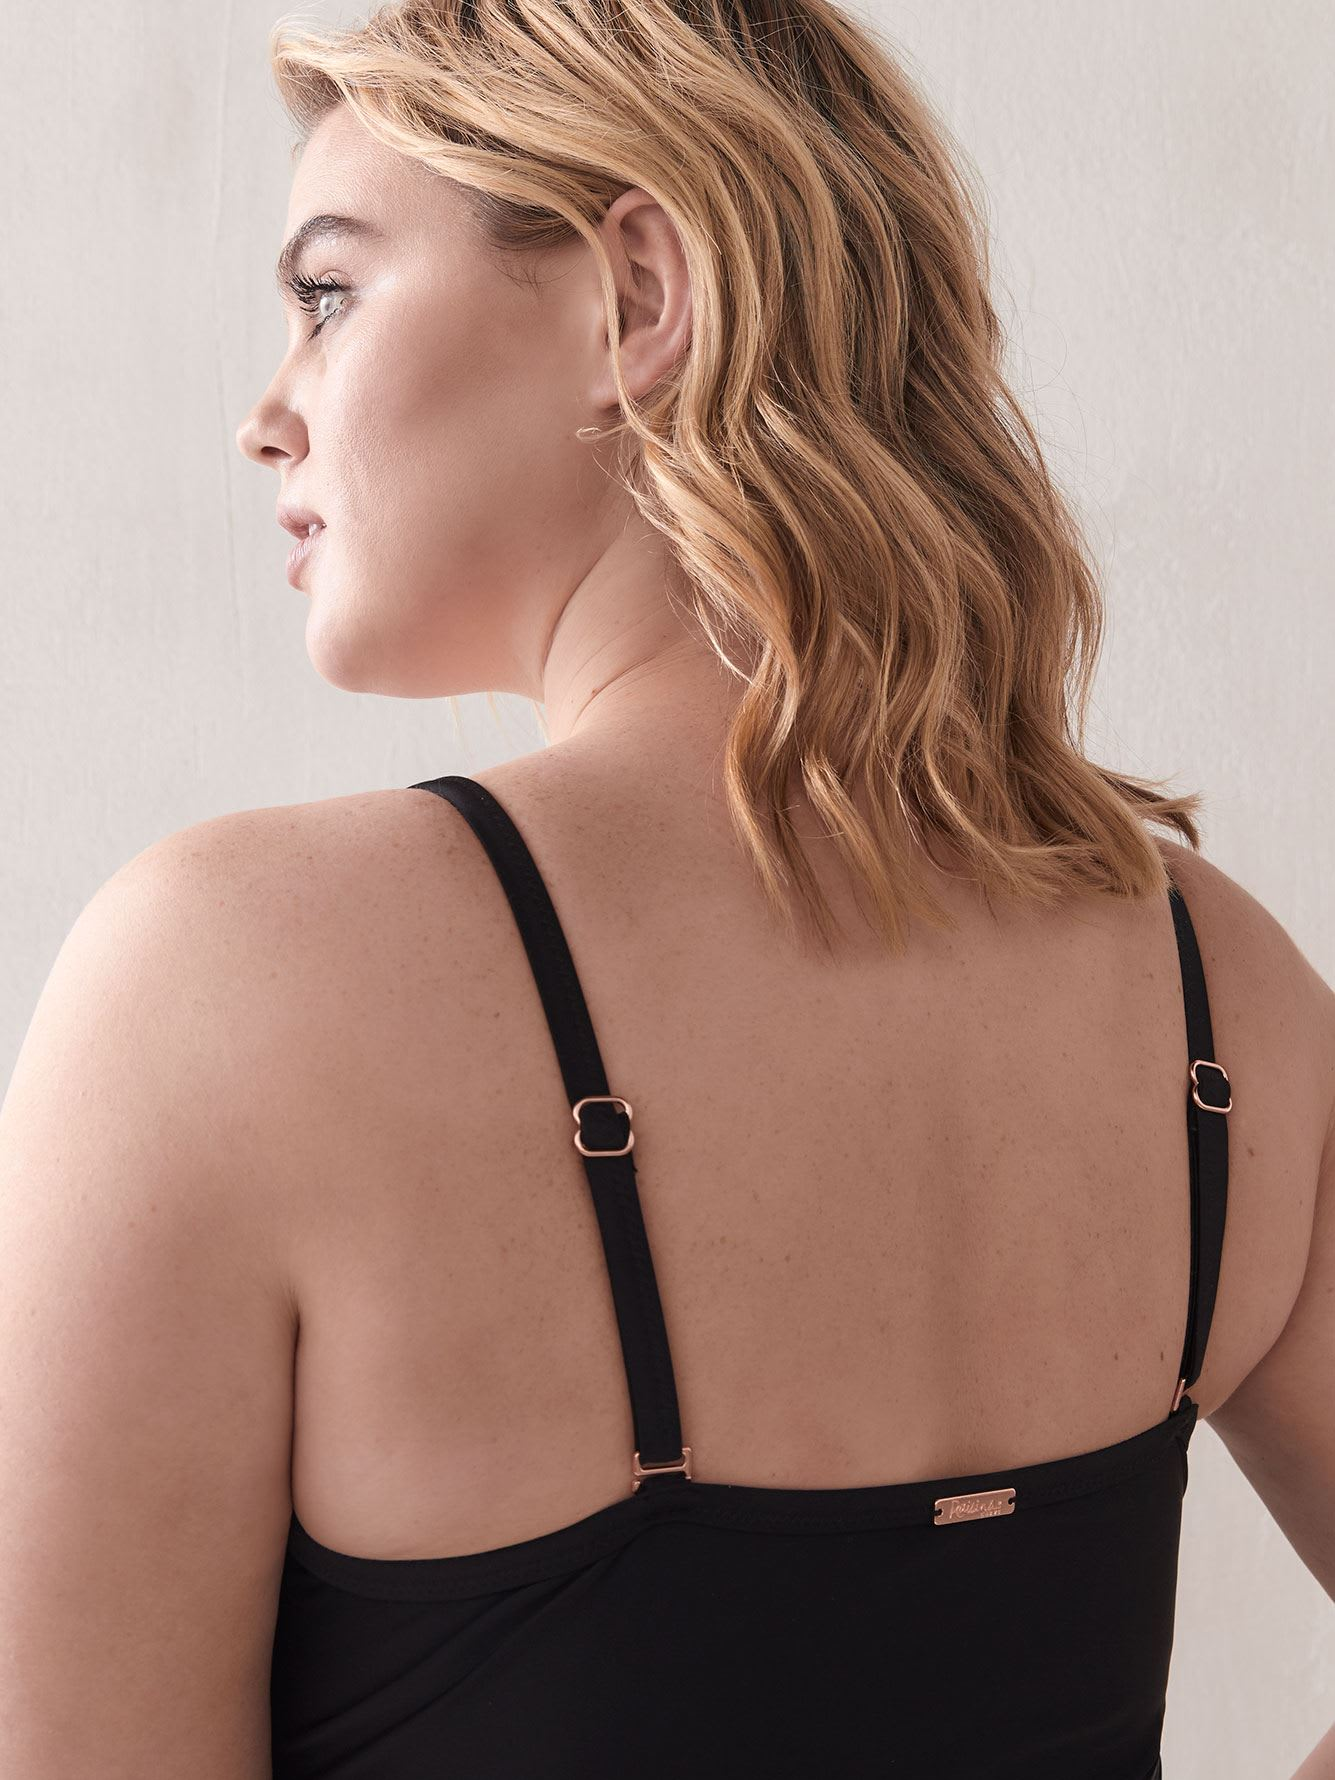 Marrakesh Canaria One-Piece Swimsuit - Raisins Curve